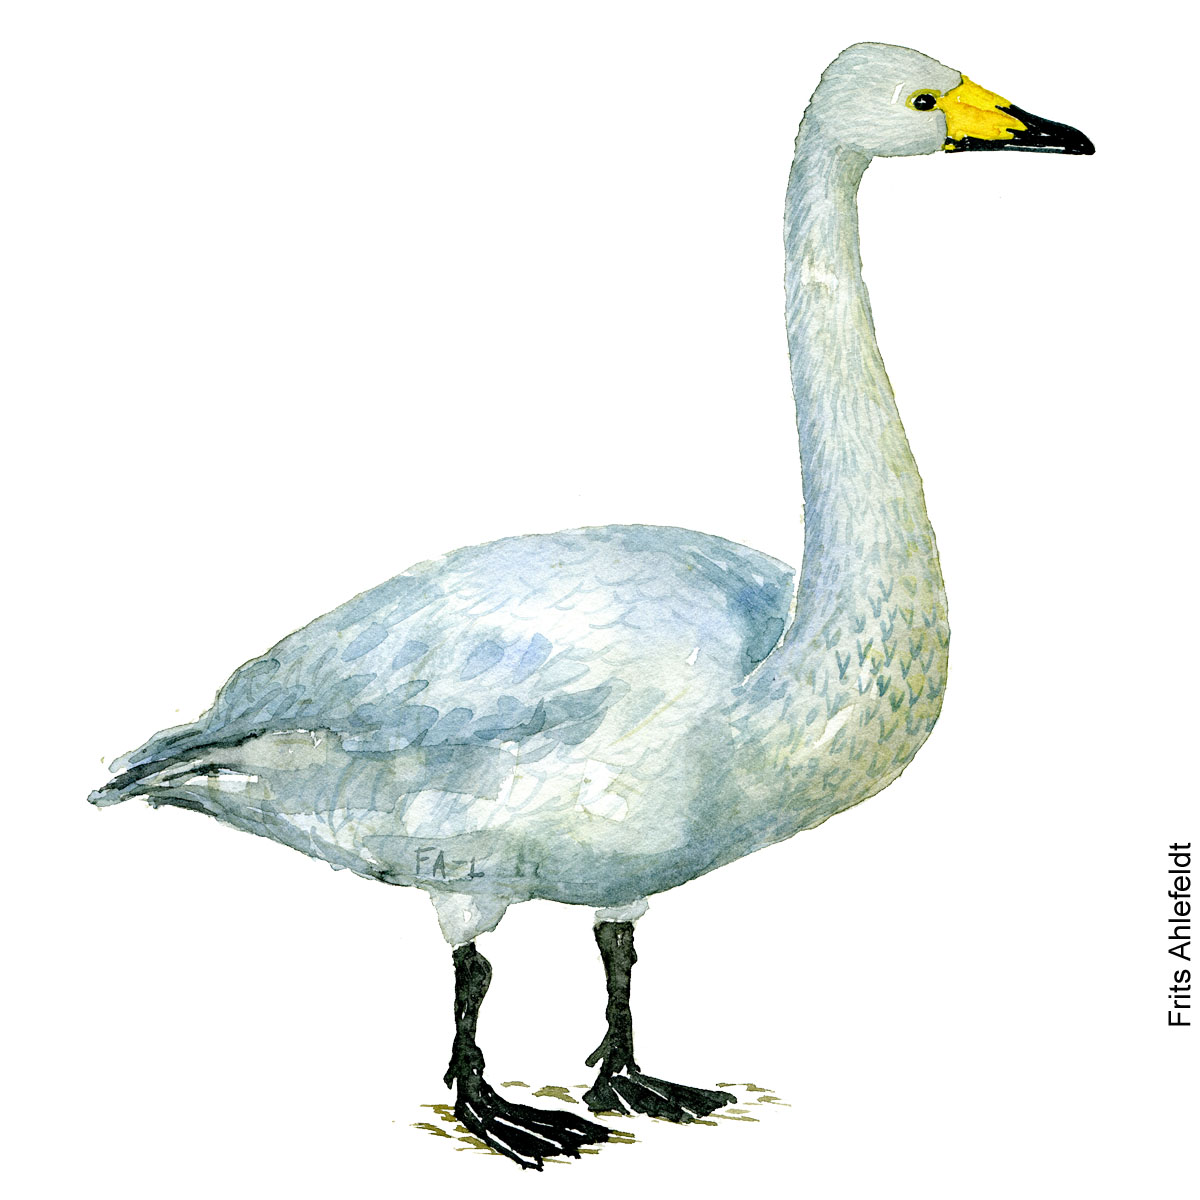 Watercolor of -Whooper swan ( cygnus cygnus, sangschwane - sangsvane) Biodiversity illustration by Frits Ahlefeldt